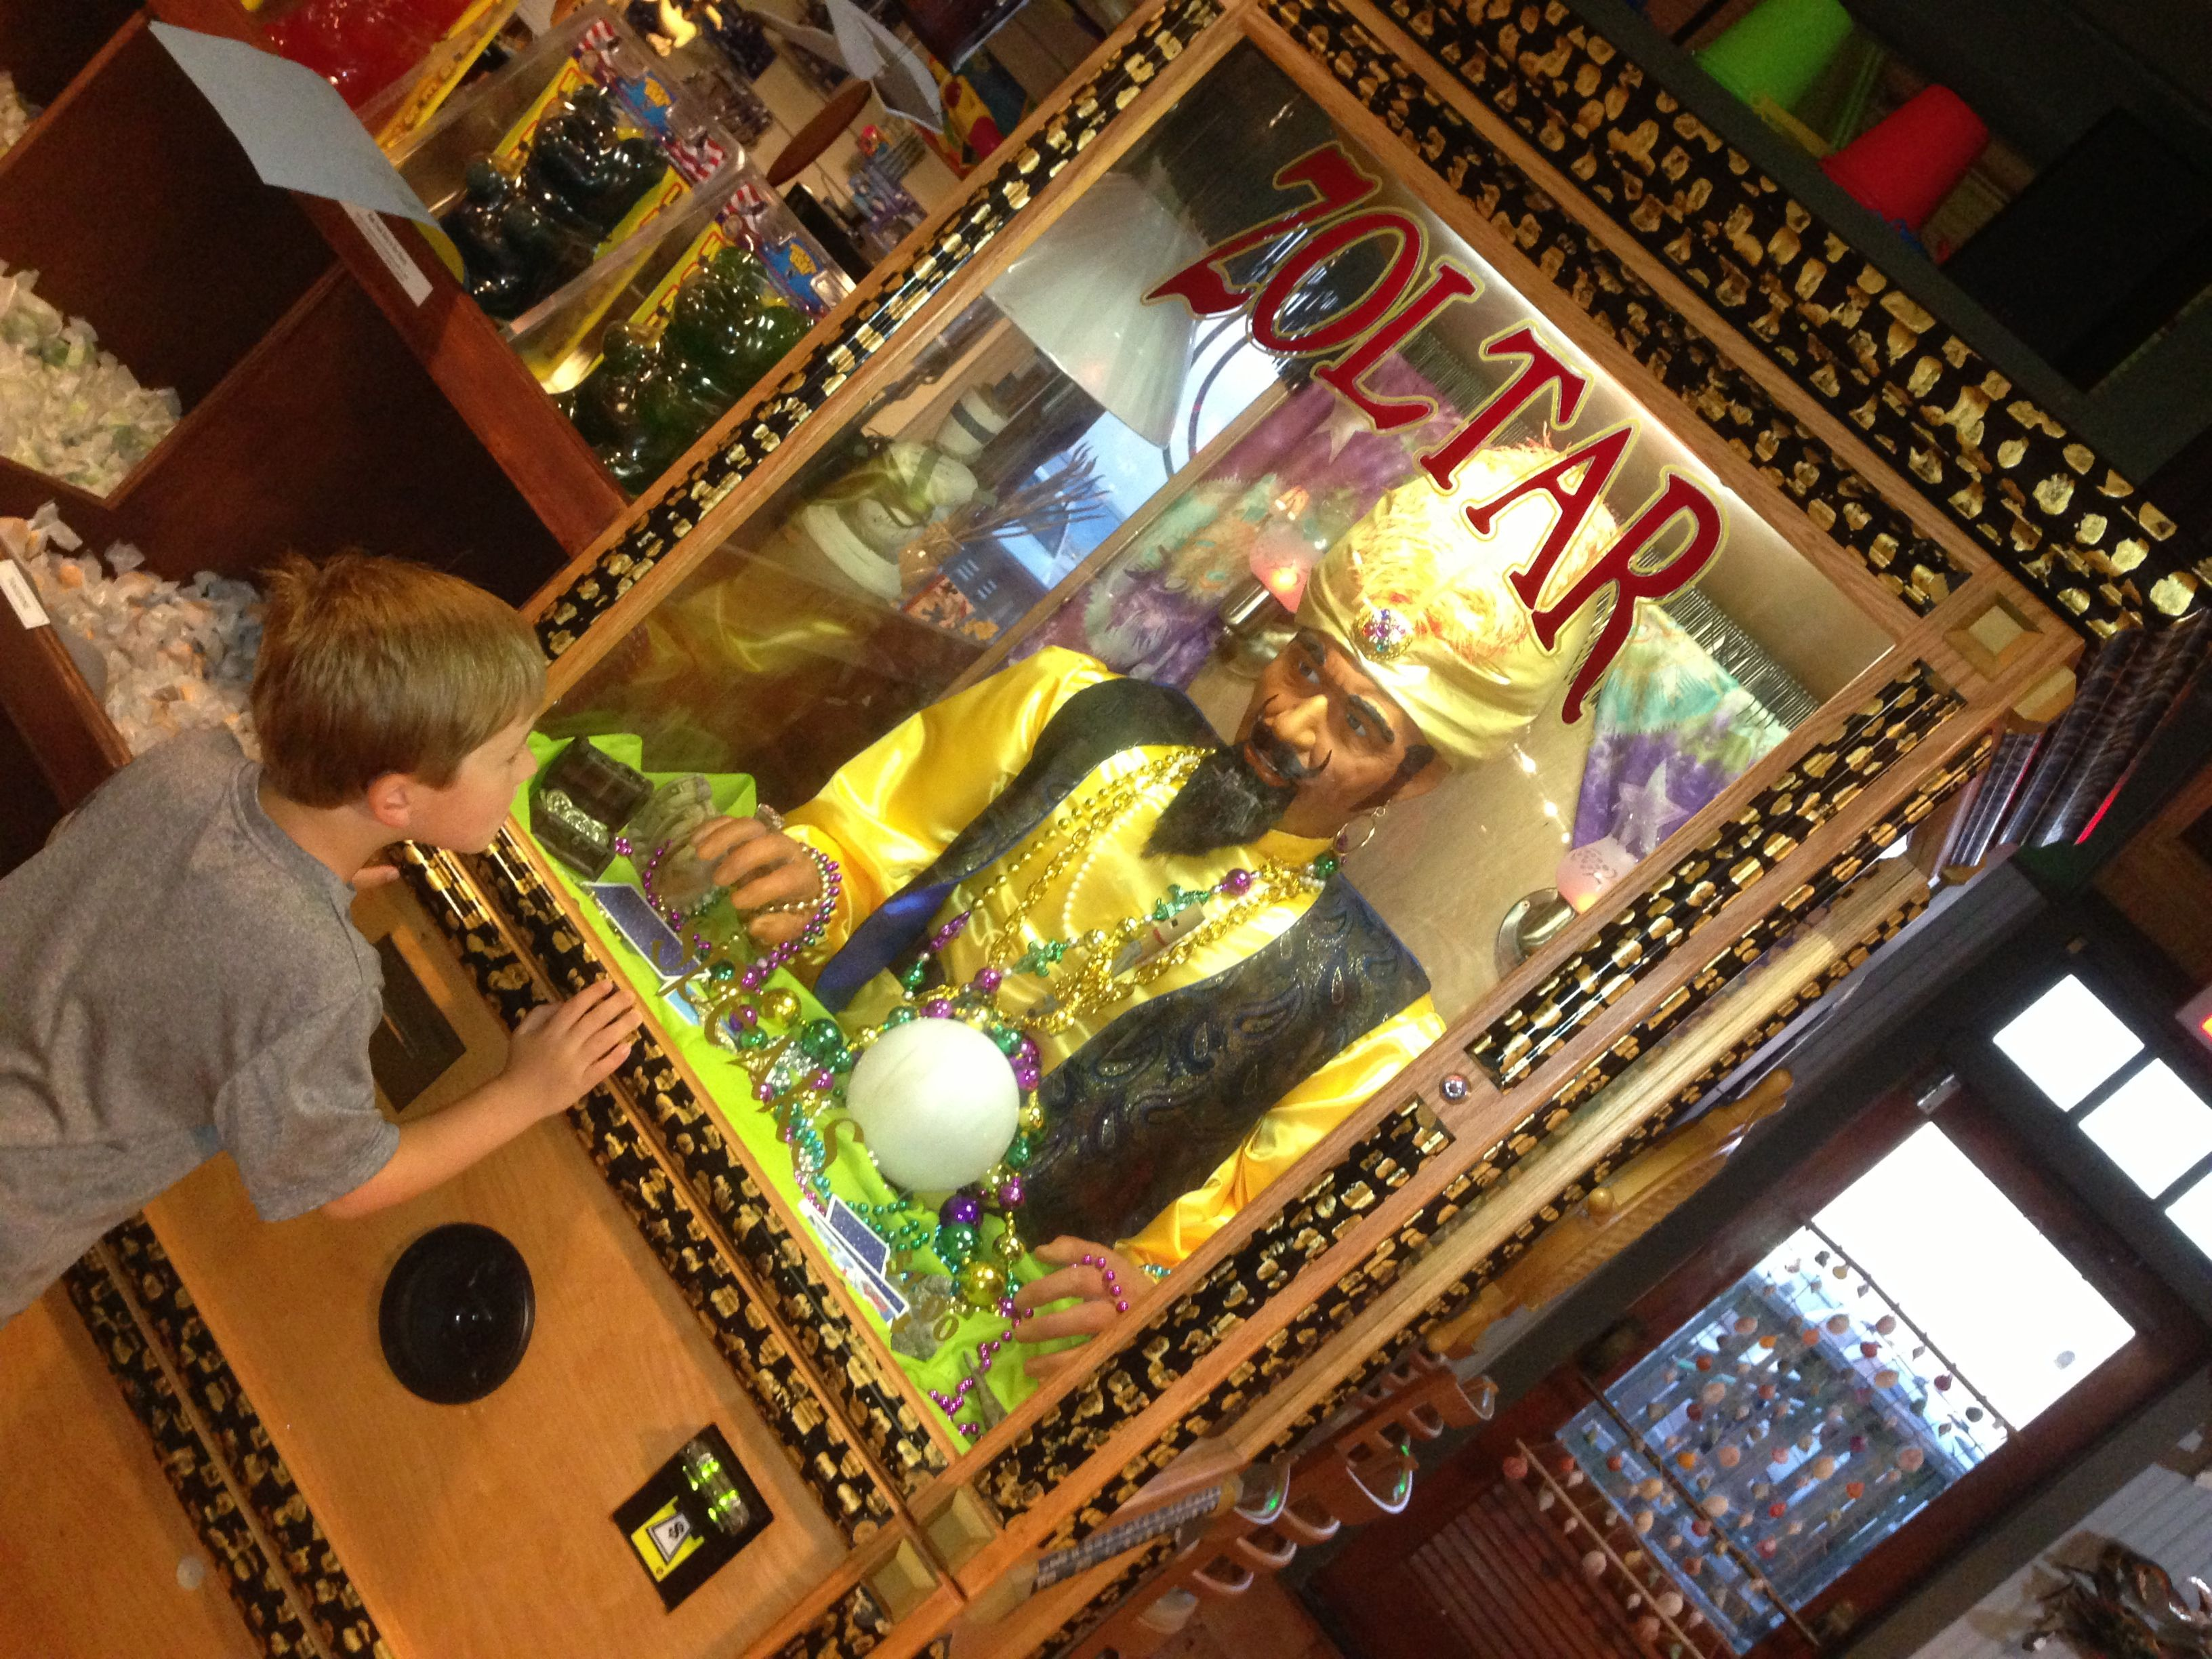 For whatever reason, my kid loves Zoltar at the Candy Maker.